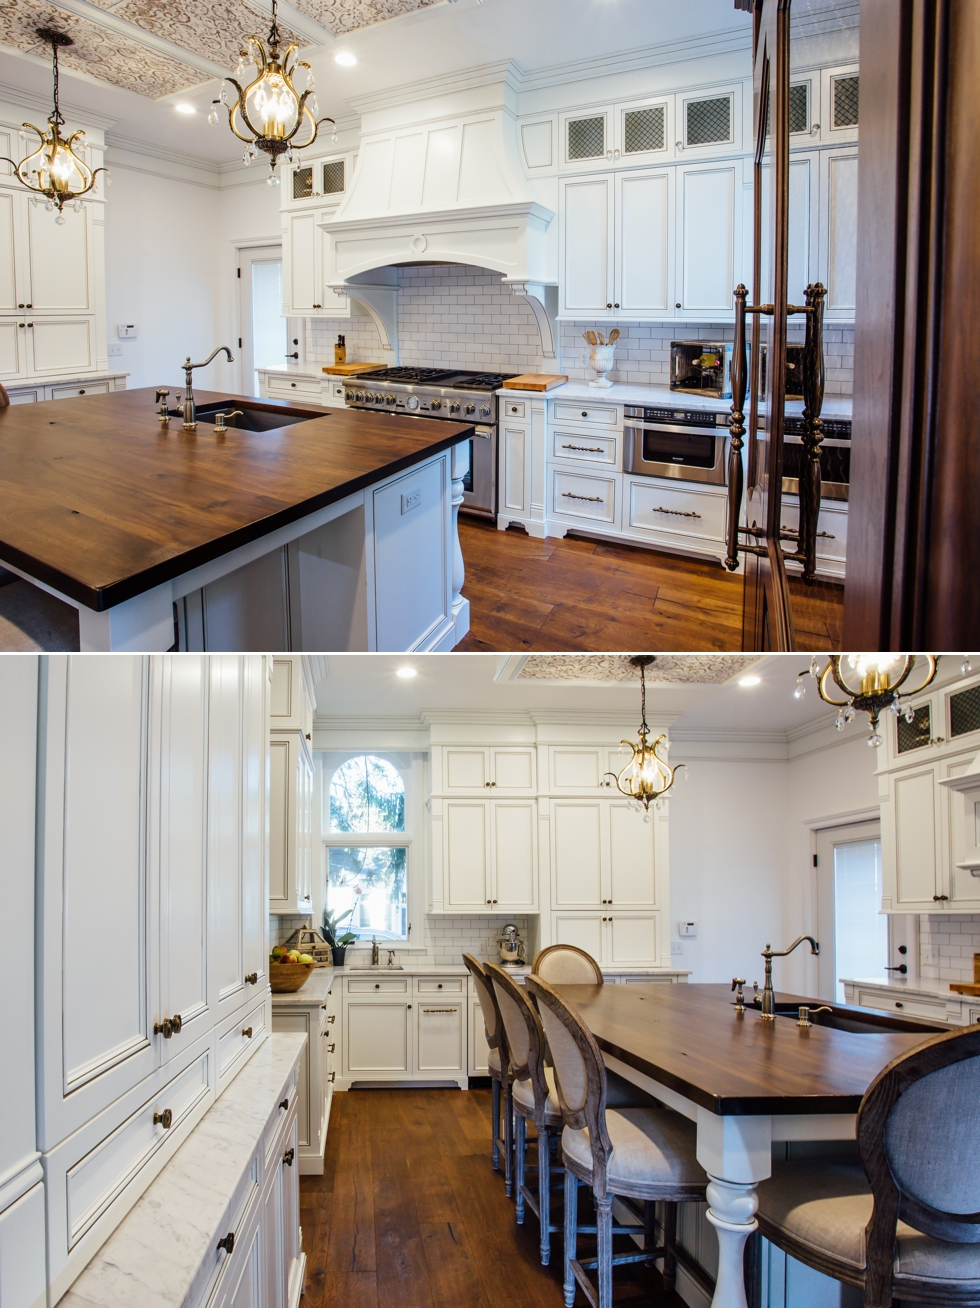 White Glazed Kitchen with Walnut Countertop